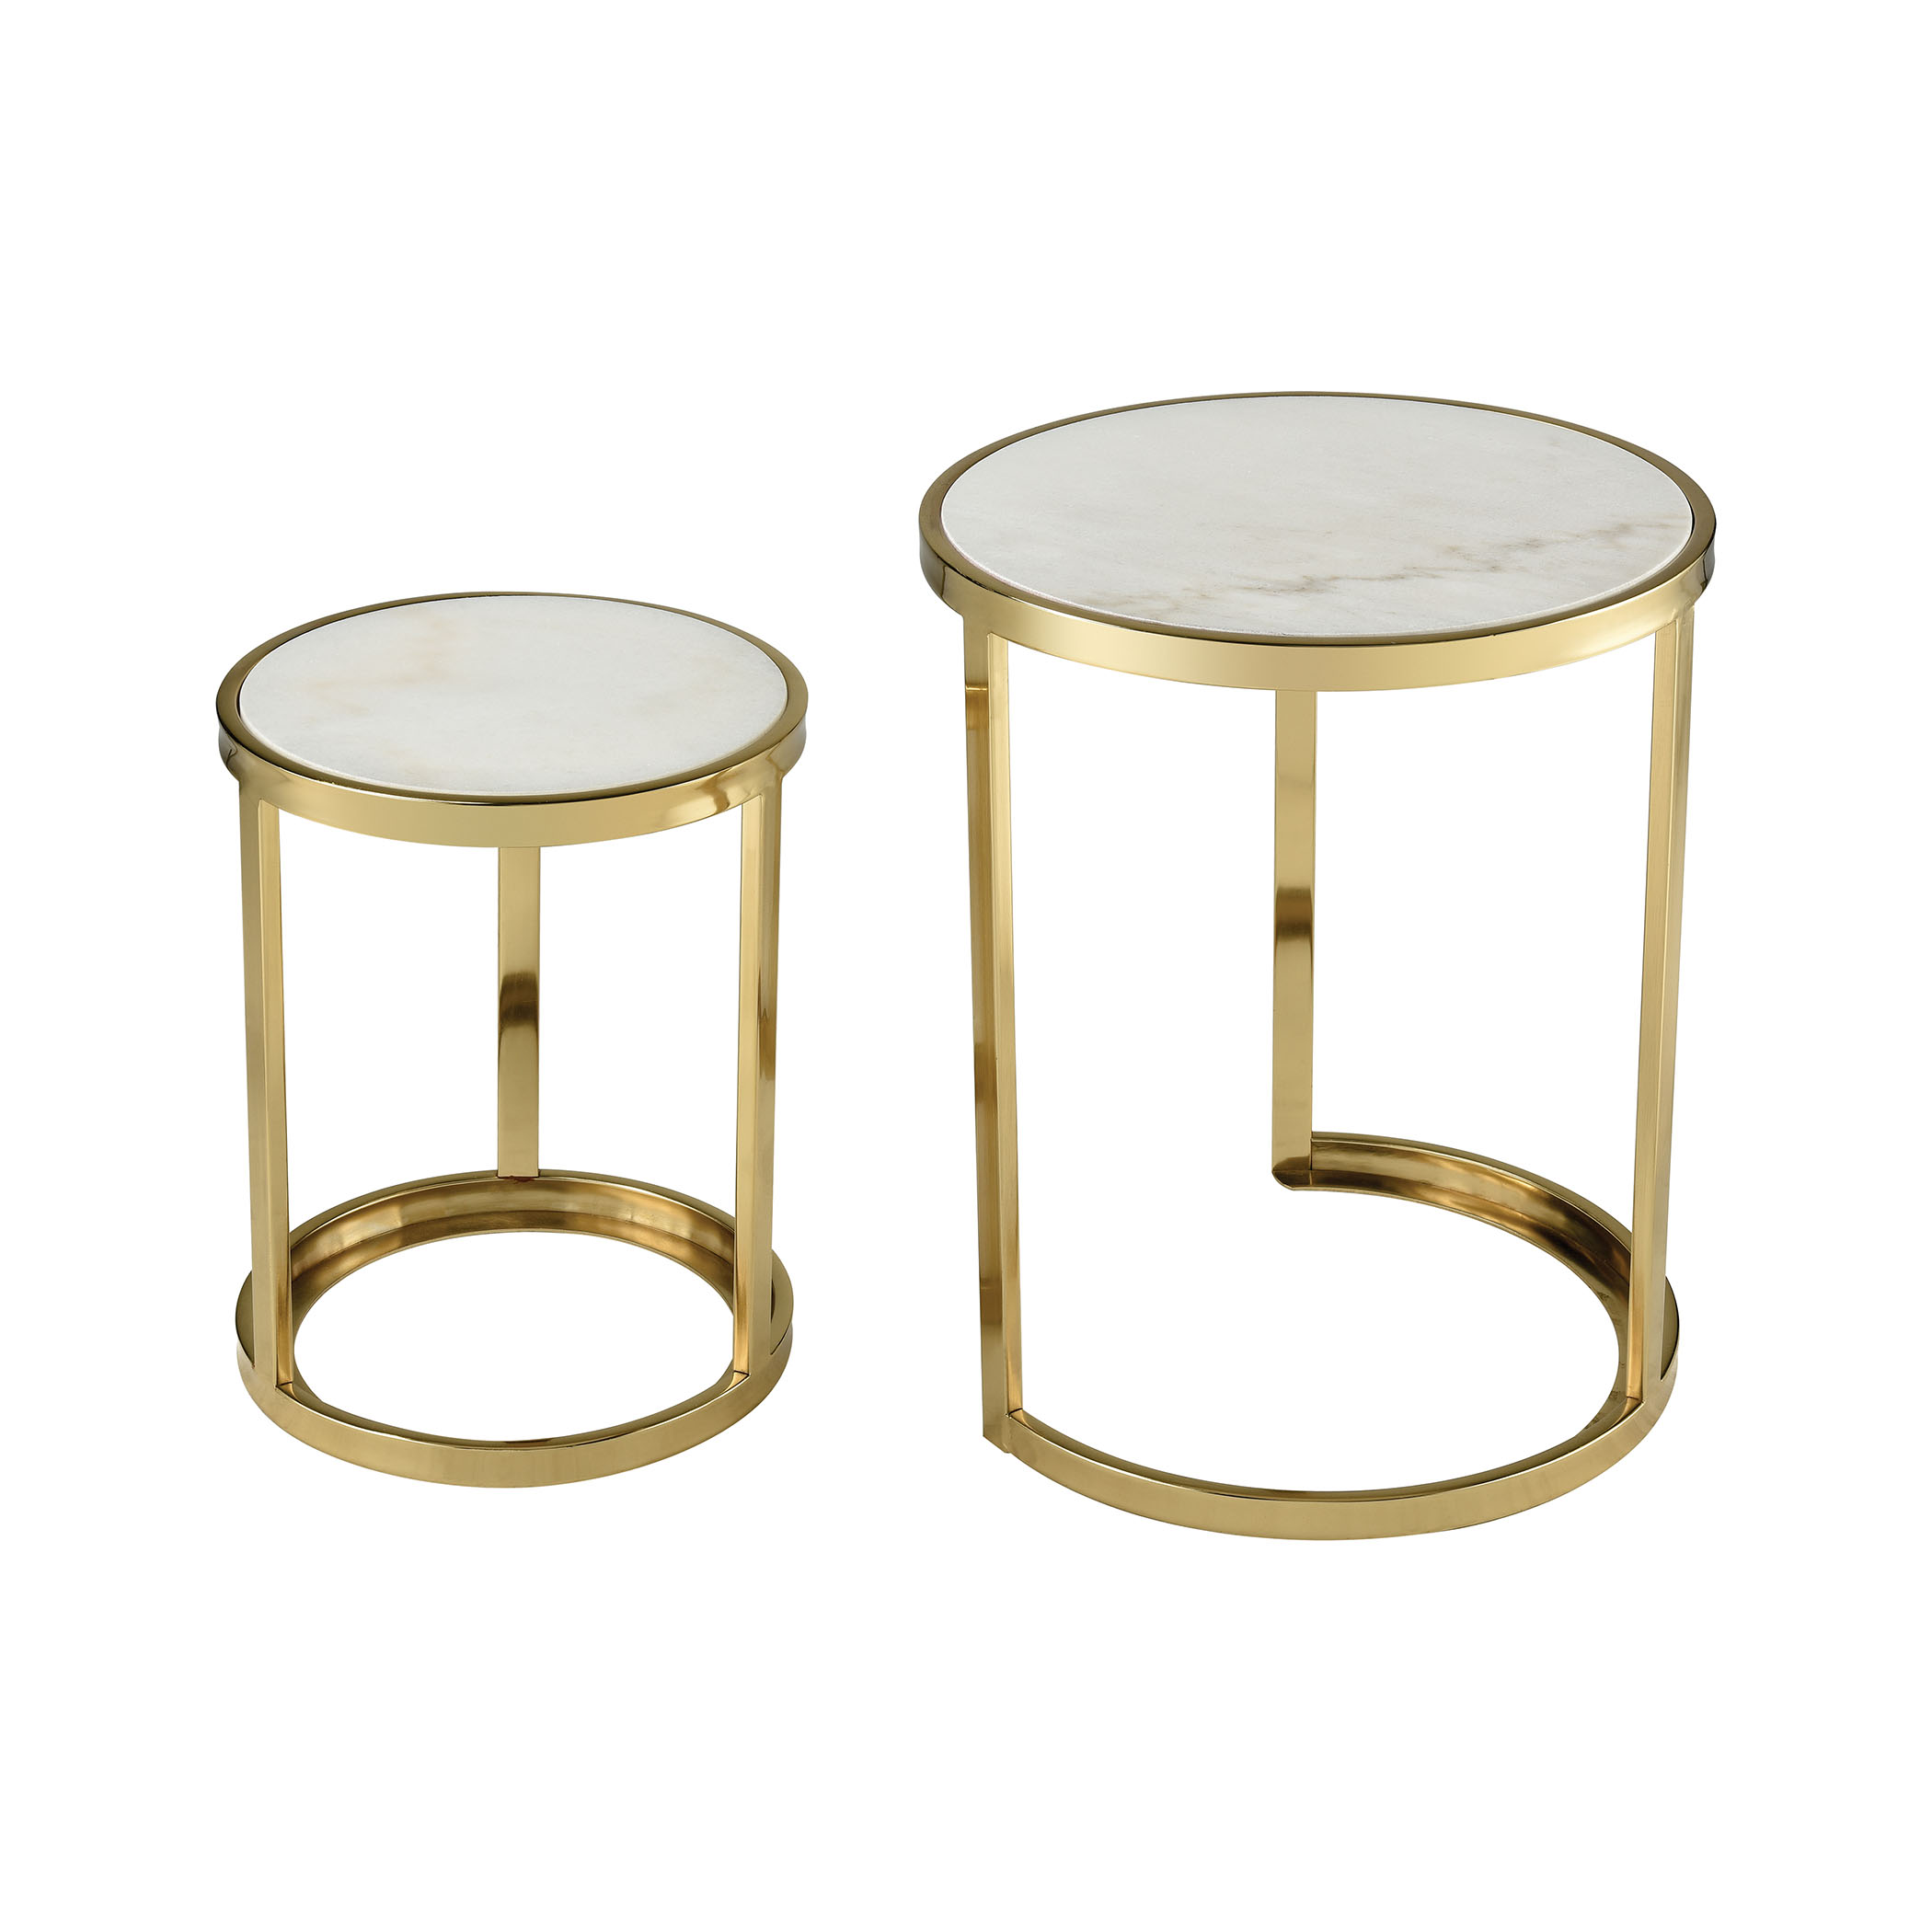 Trimalchio Gold Plated and White Metal and Marble Accent Tables Set of 2 | Elk Home